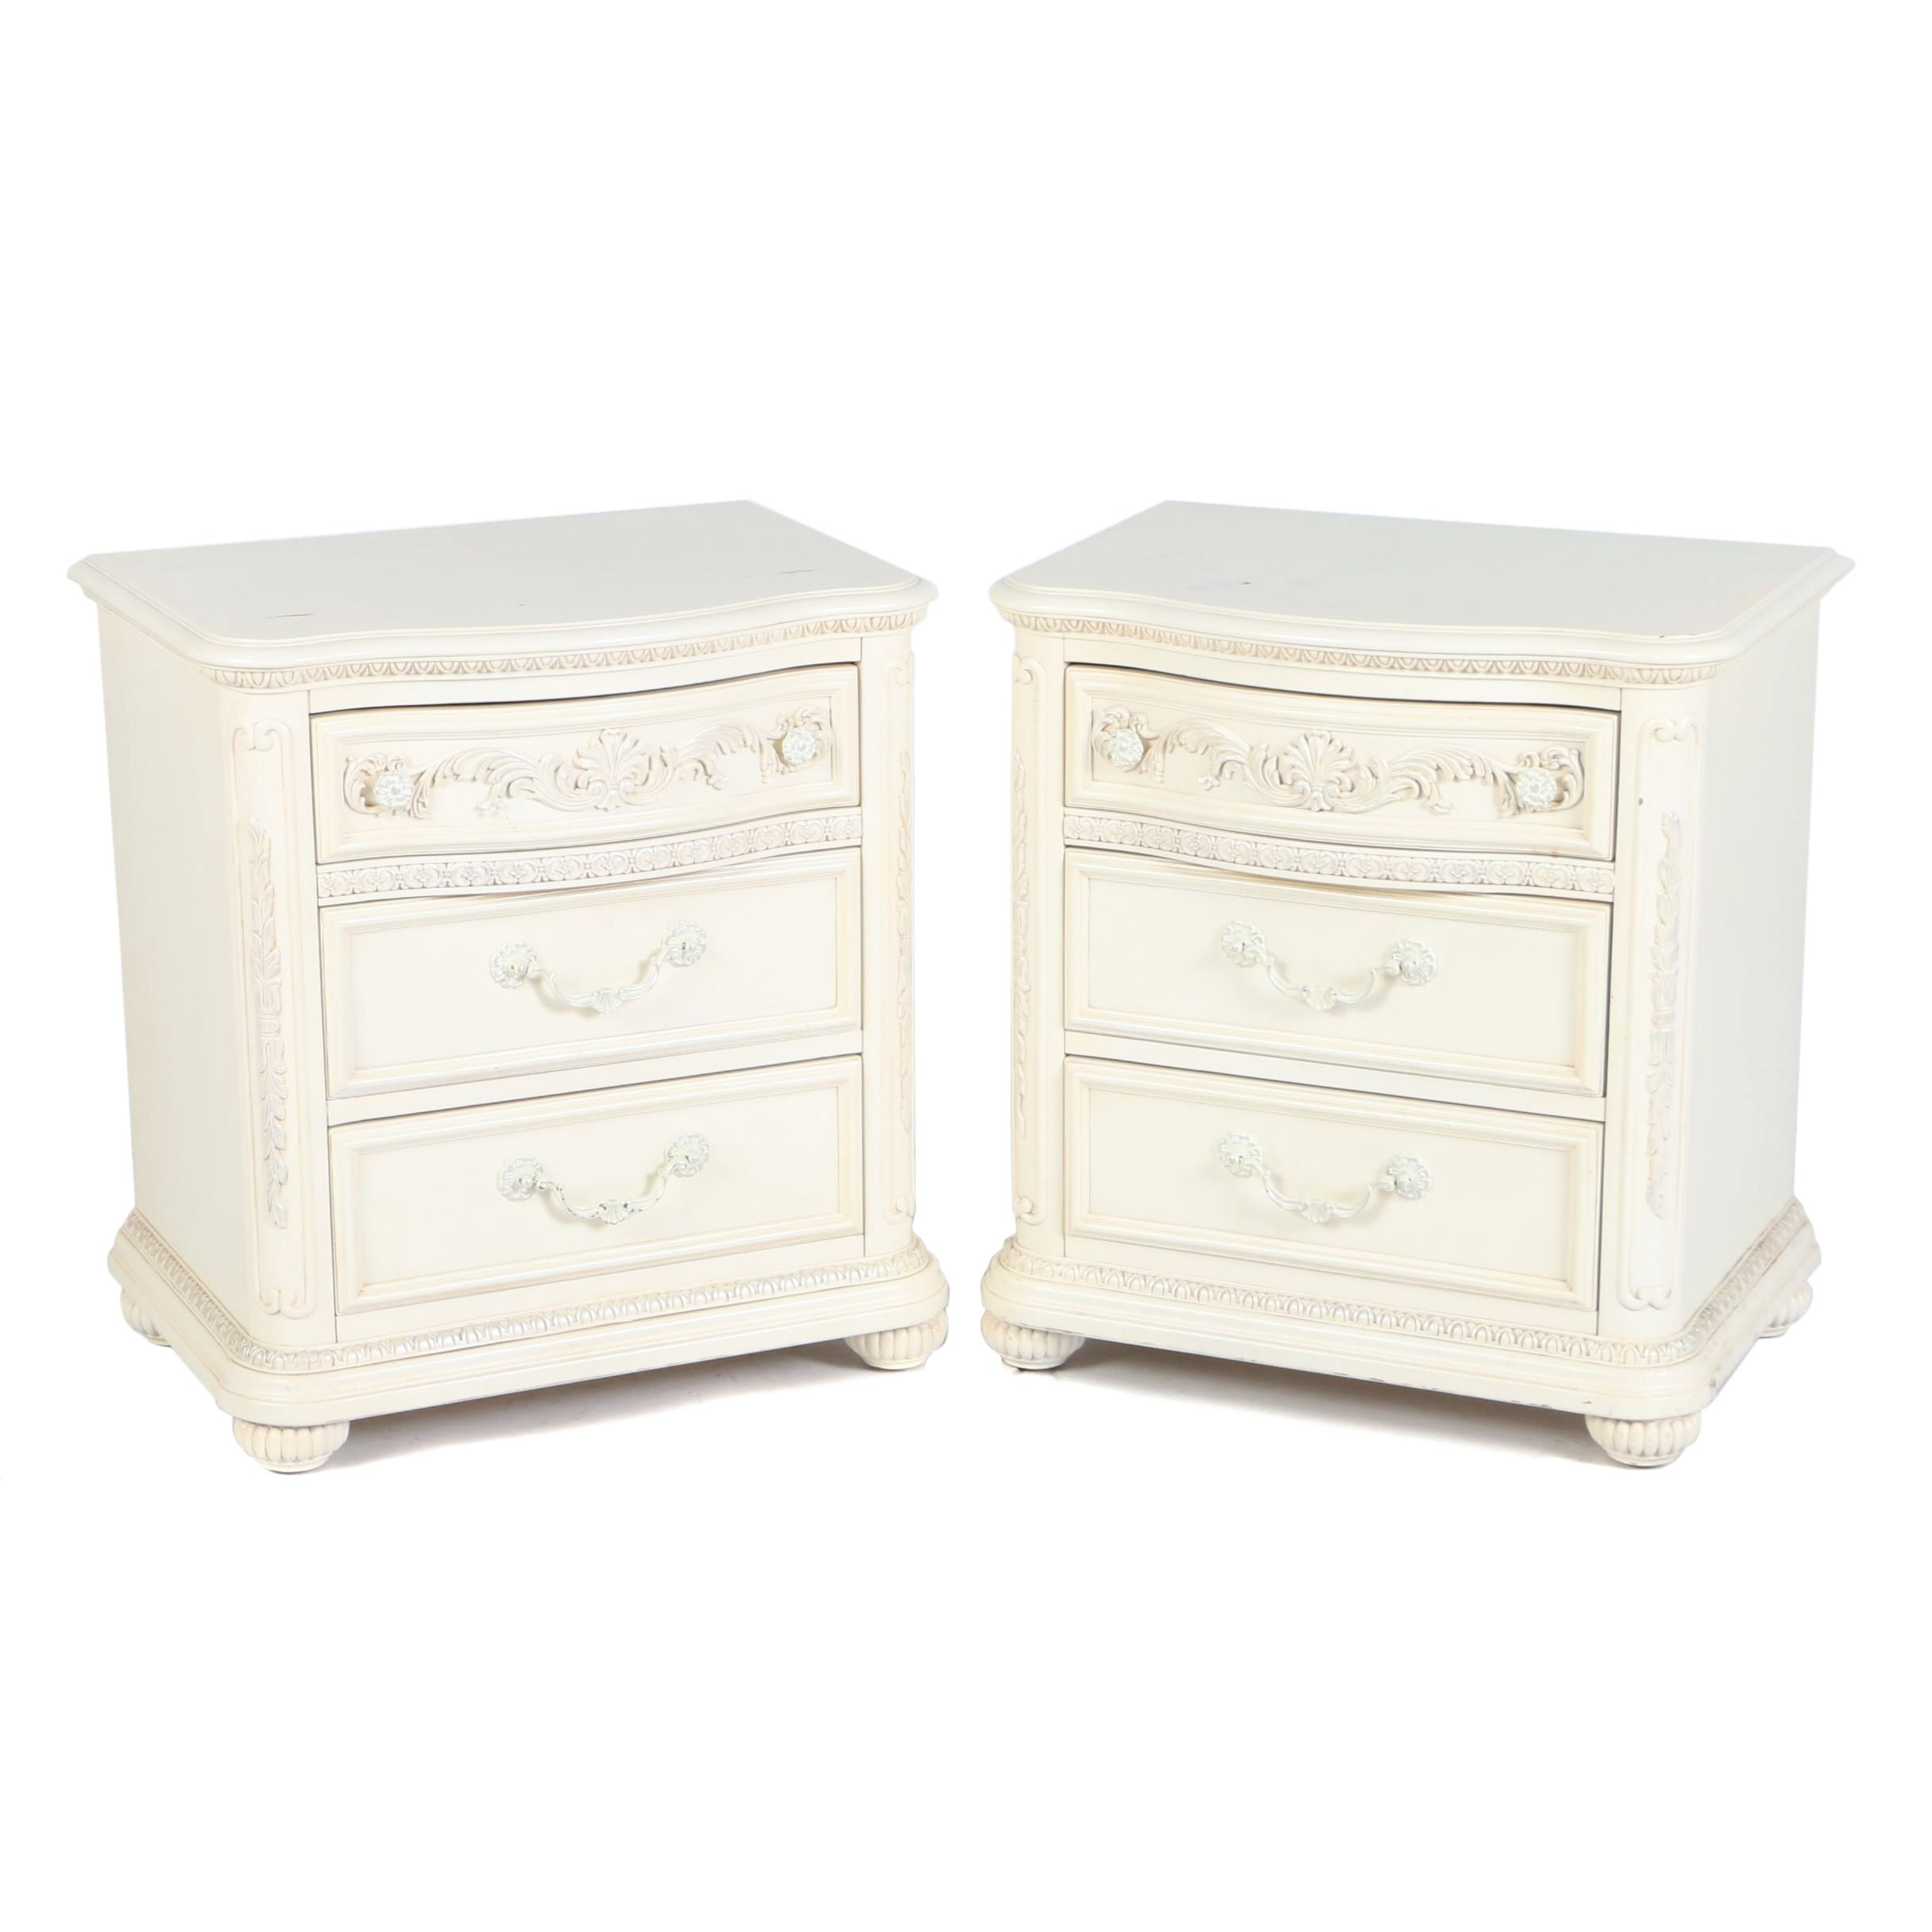 Pair of Contemporary Cream-Painted Bedside Chests of Drawers